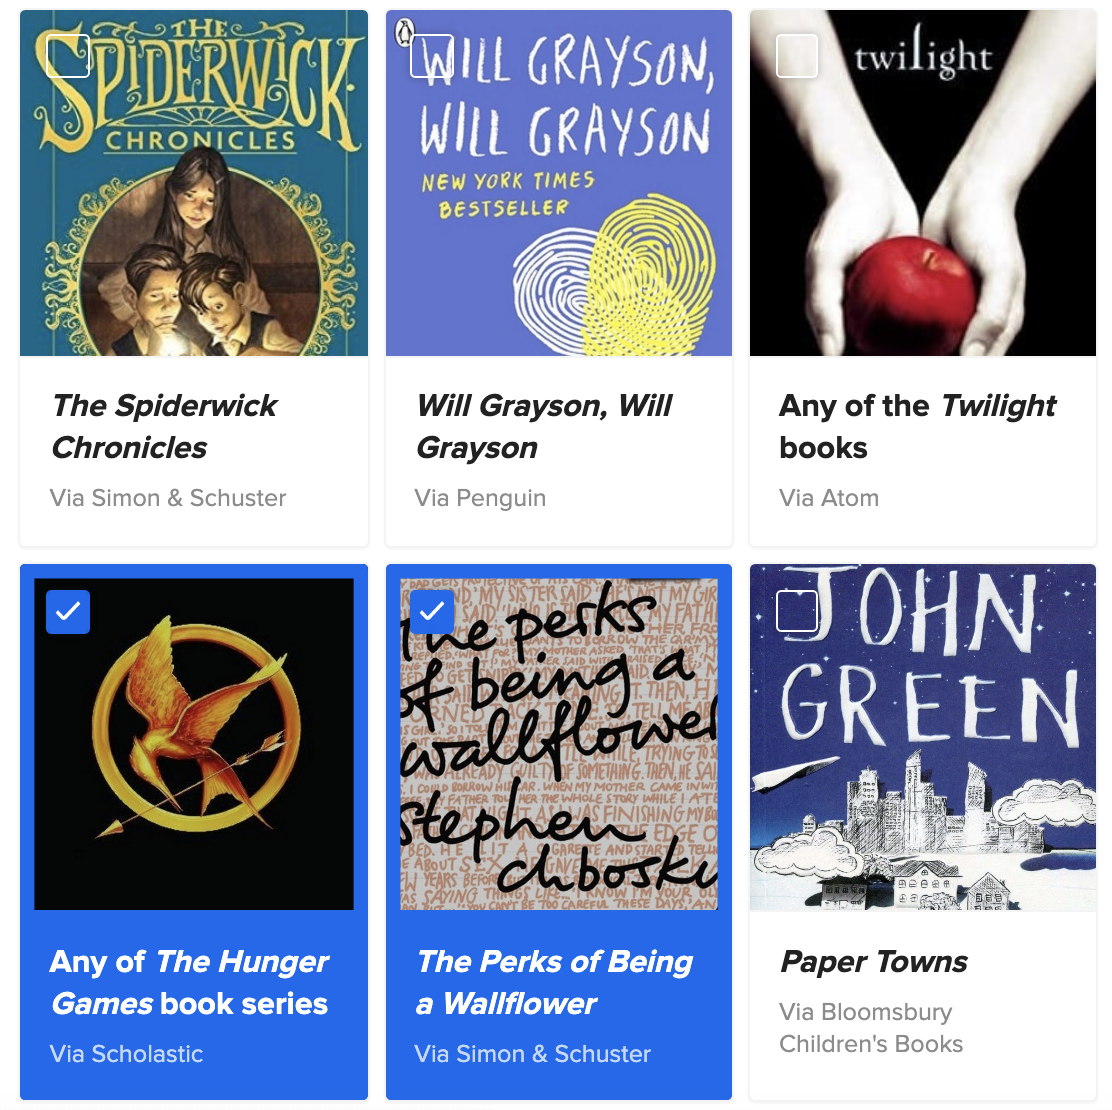 A quiz question asking you to check off which books you've read